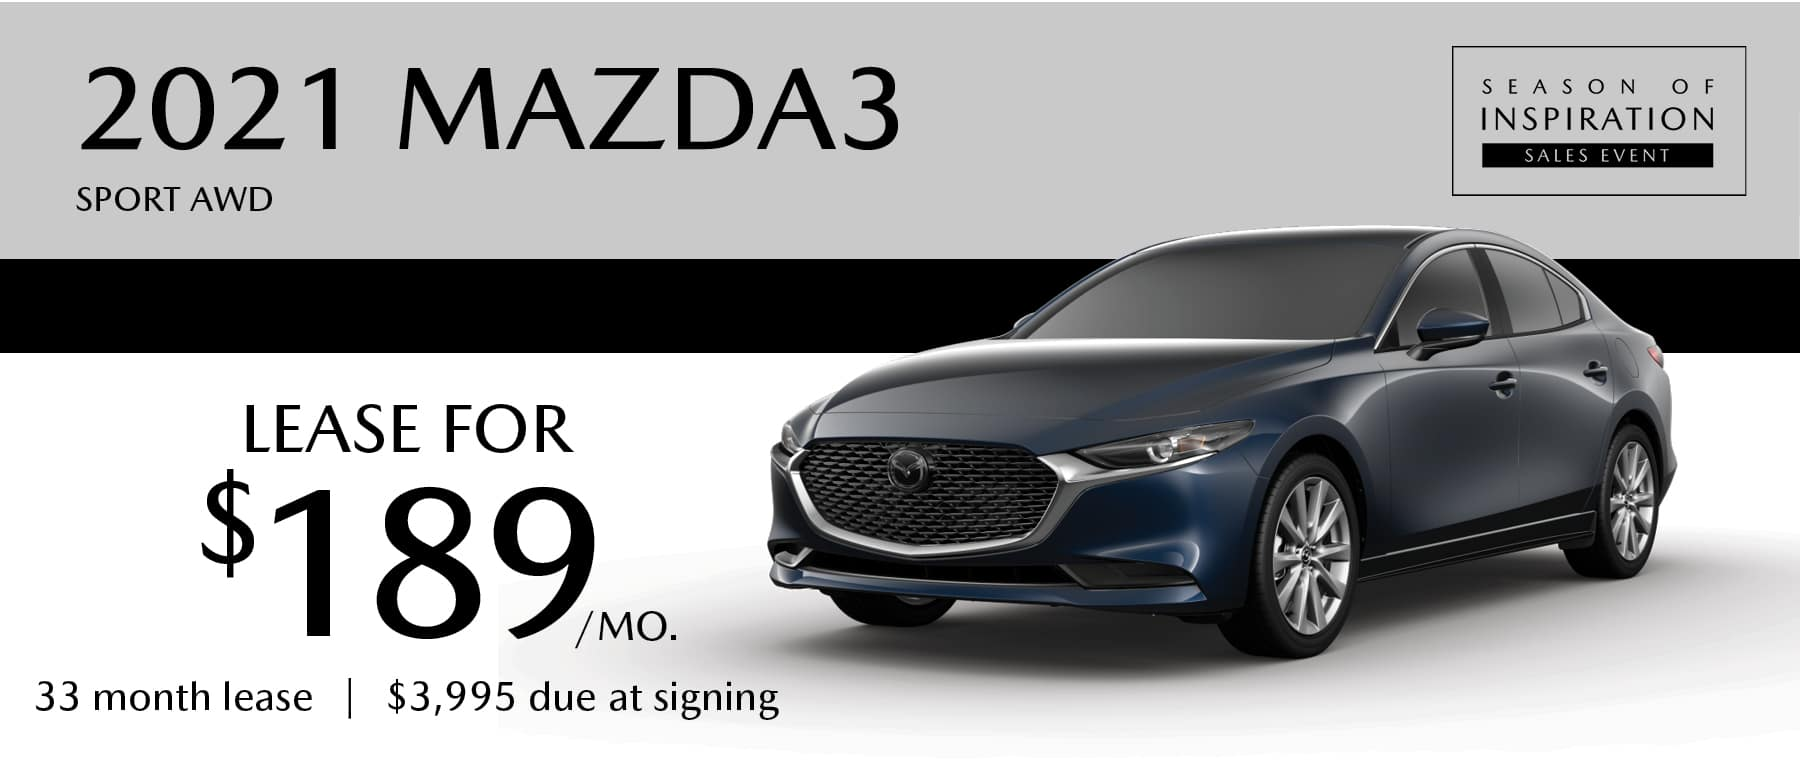 2021 MAZDA3 Sport AWD Lease Offer at Smail Mazda